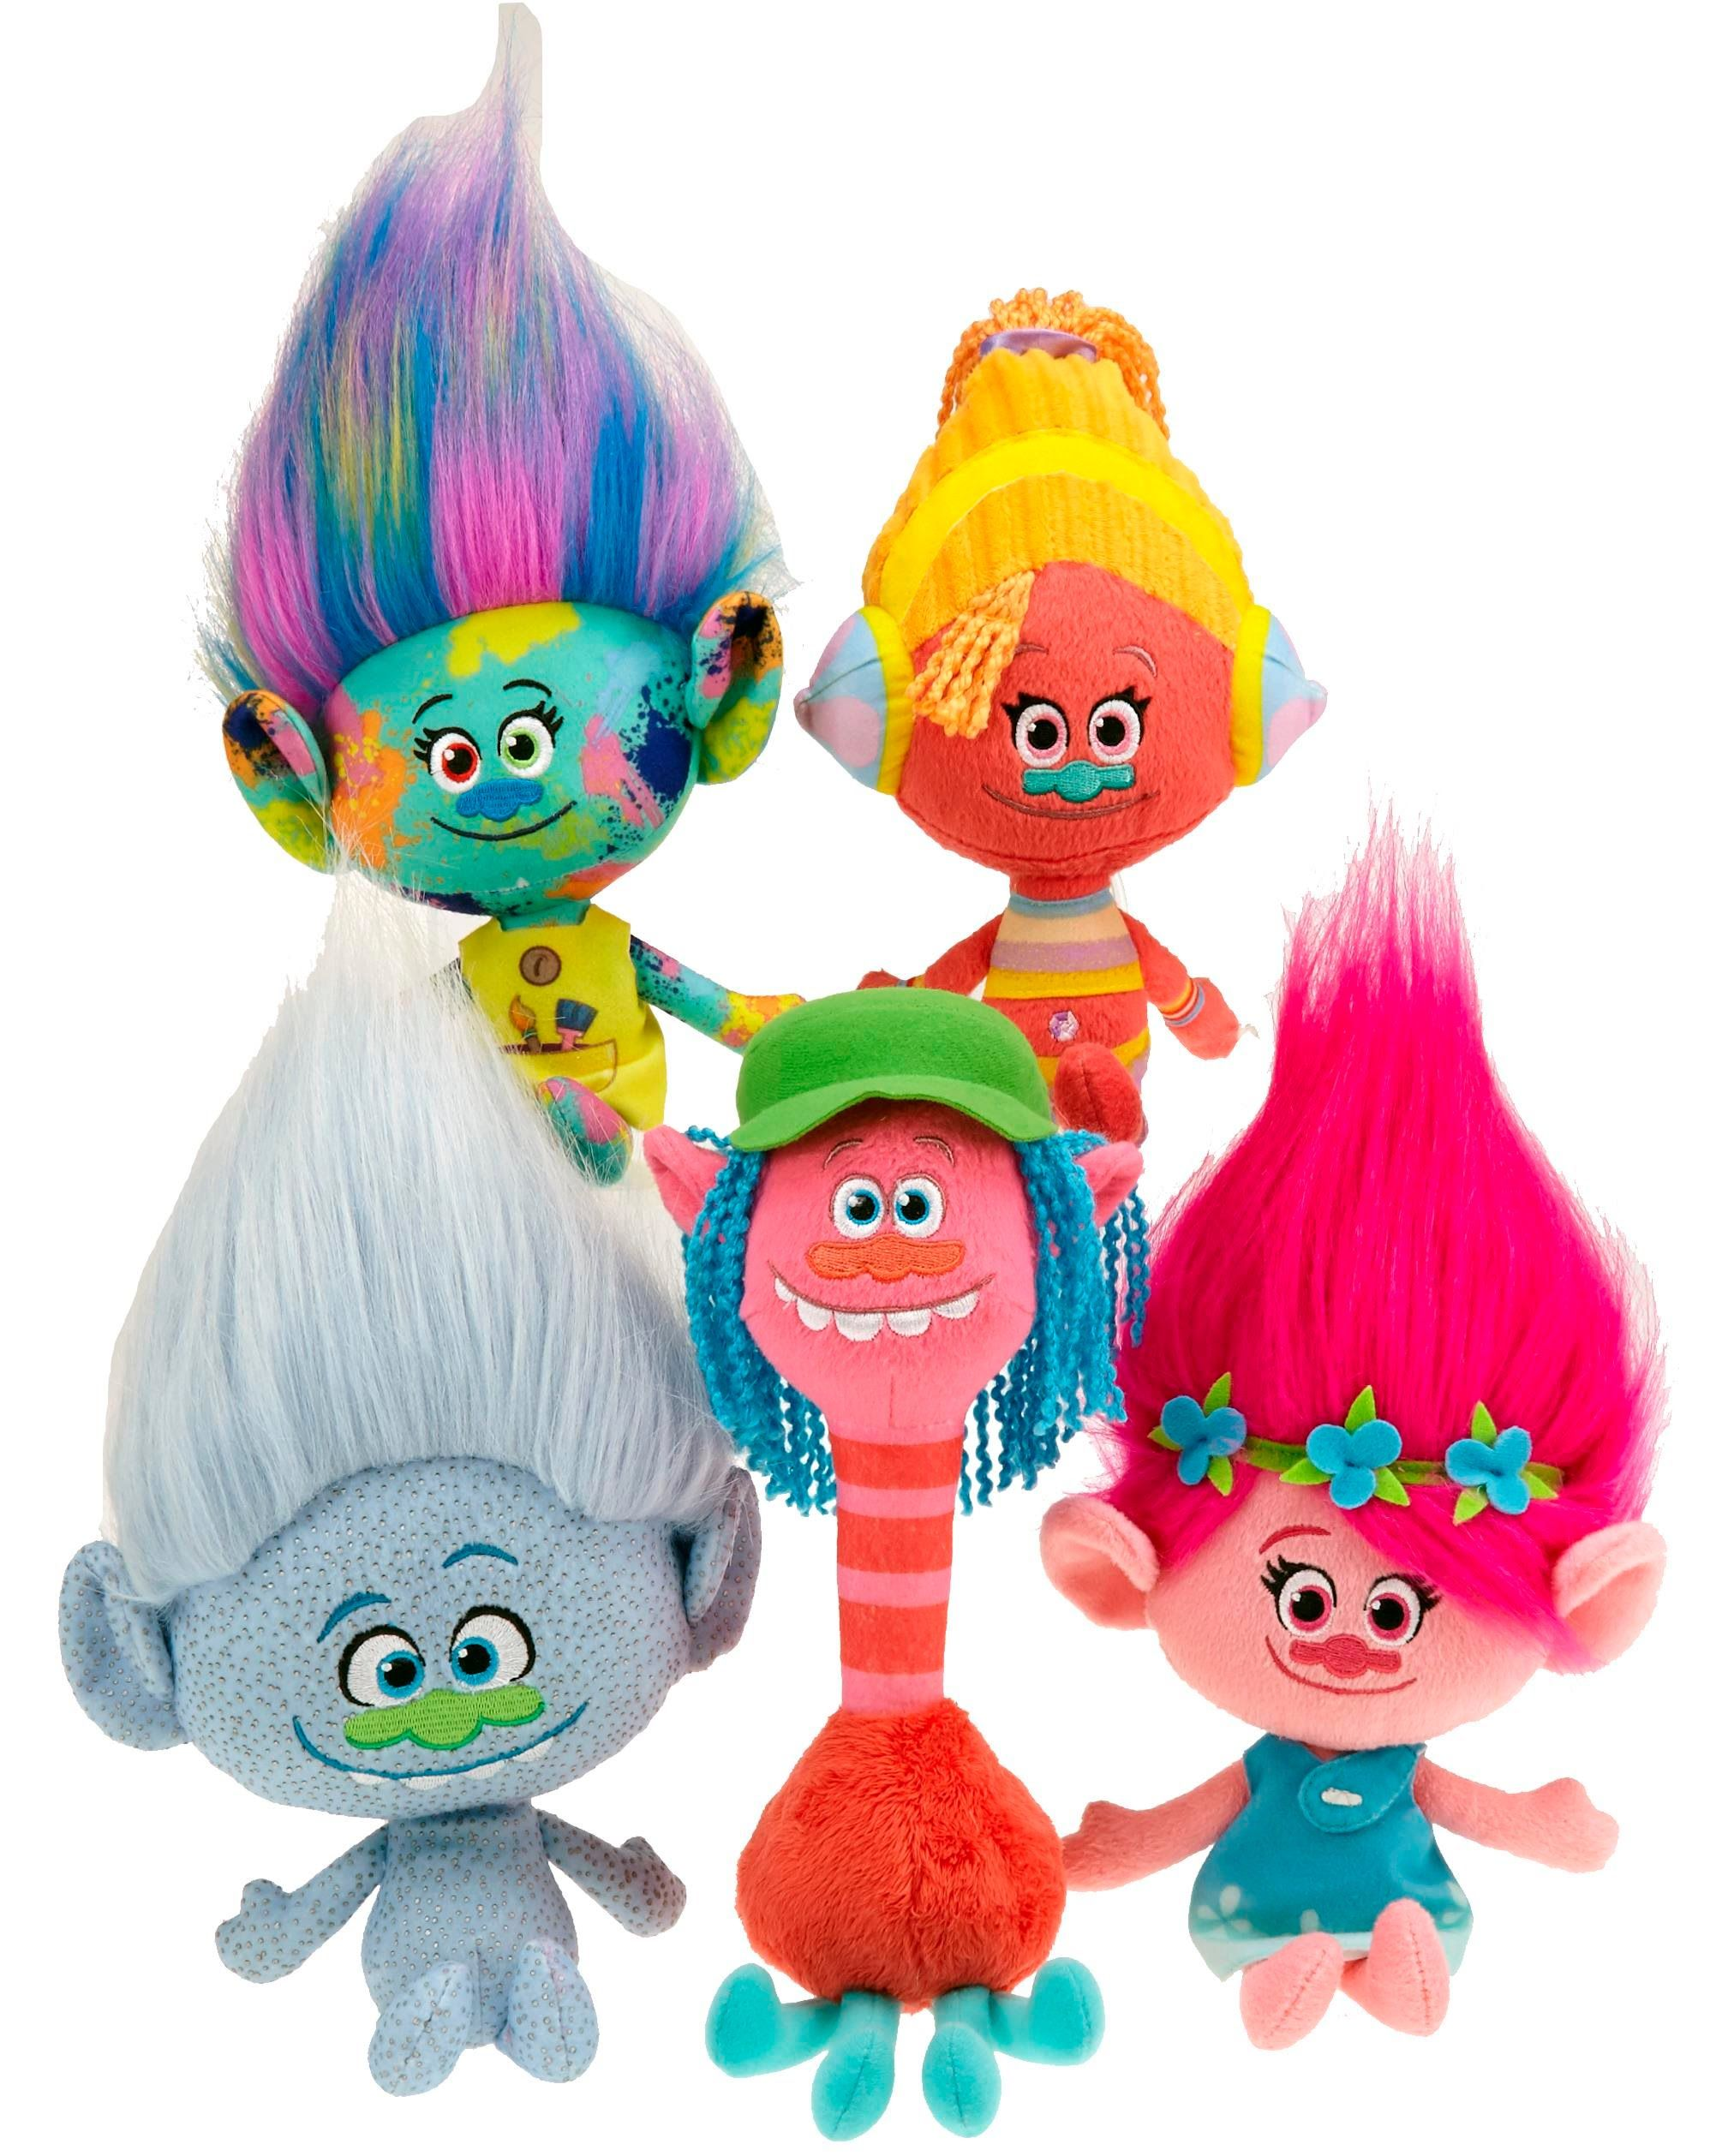 New Trolls from Dreamworks Toys for 2016 First Look Toy Fair 2016